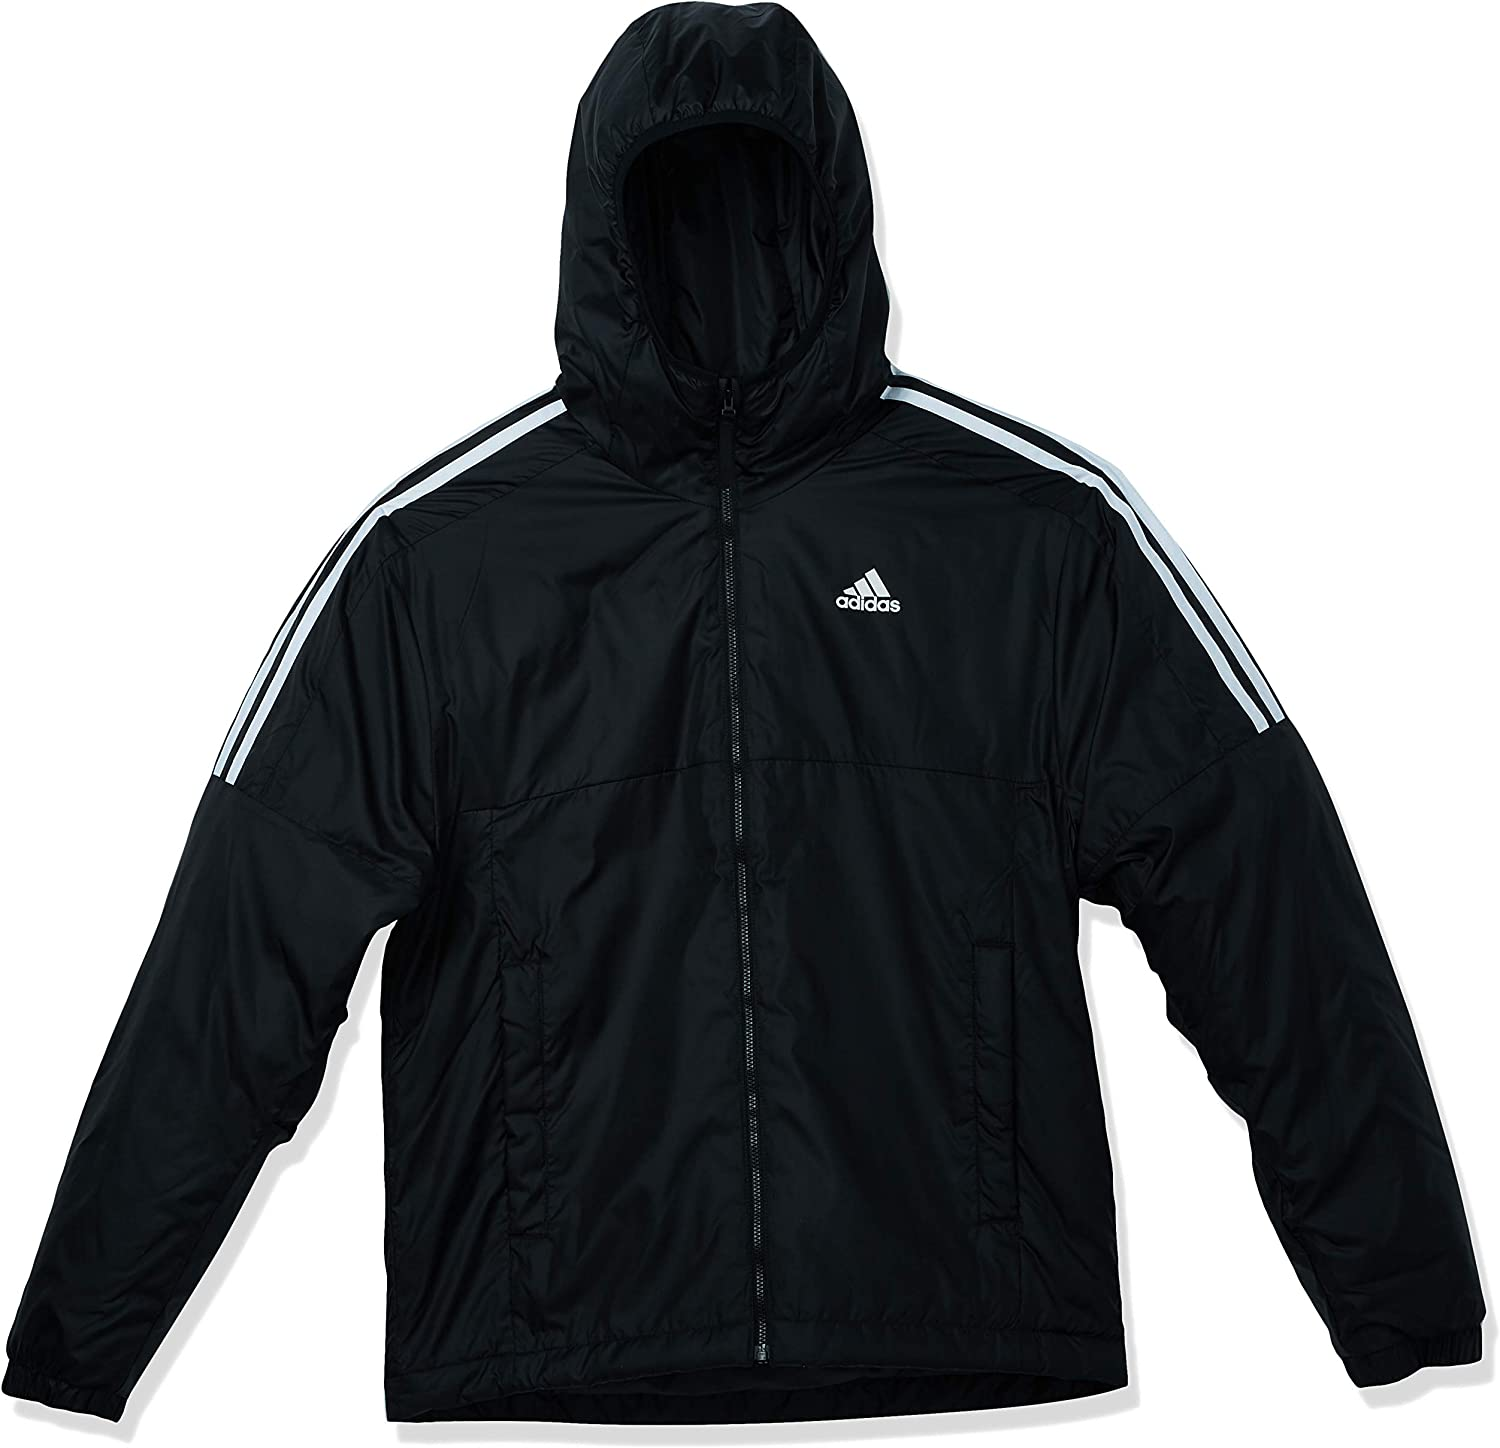 adidas mens Essentials Insulated Hooded Jacket